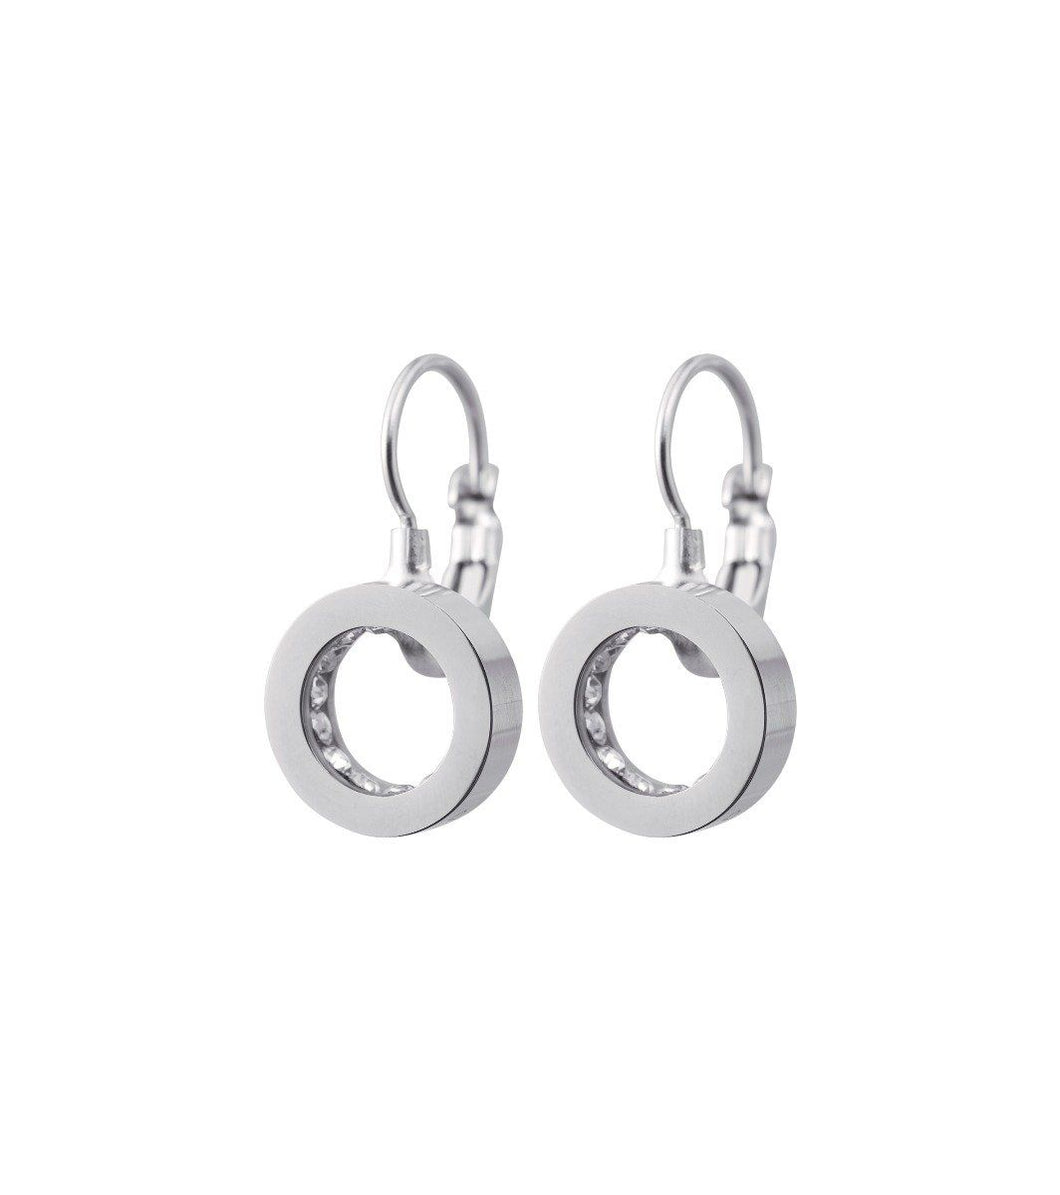 MONACO EARRINGS FRENCH HOOK STEEL